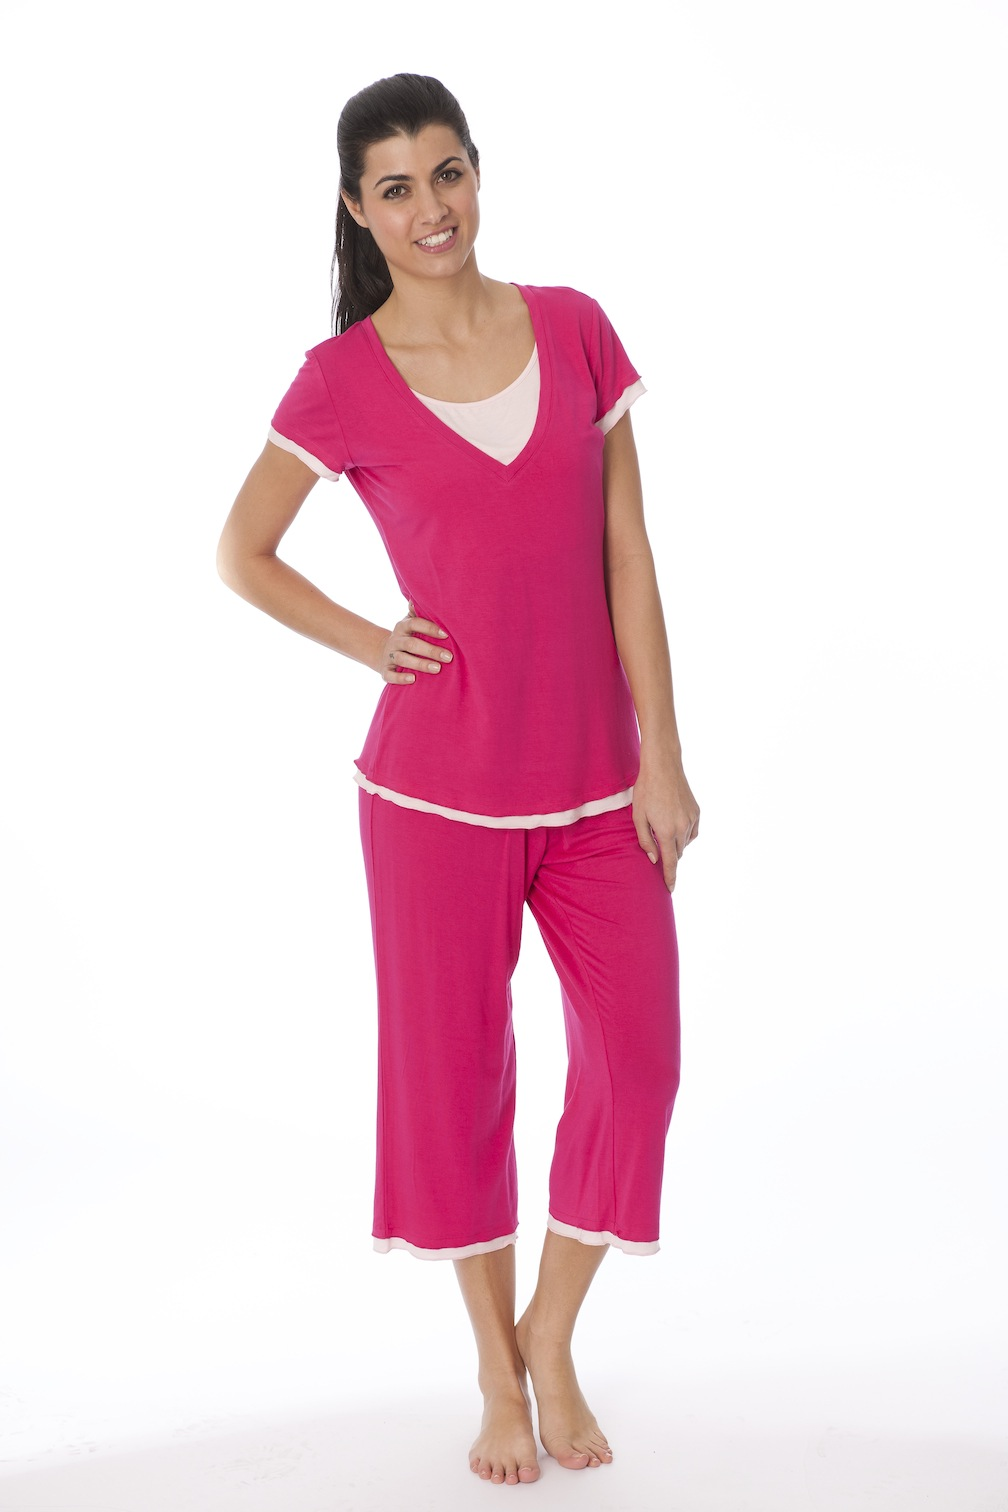 4389_-_front_-_pink